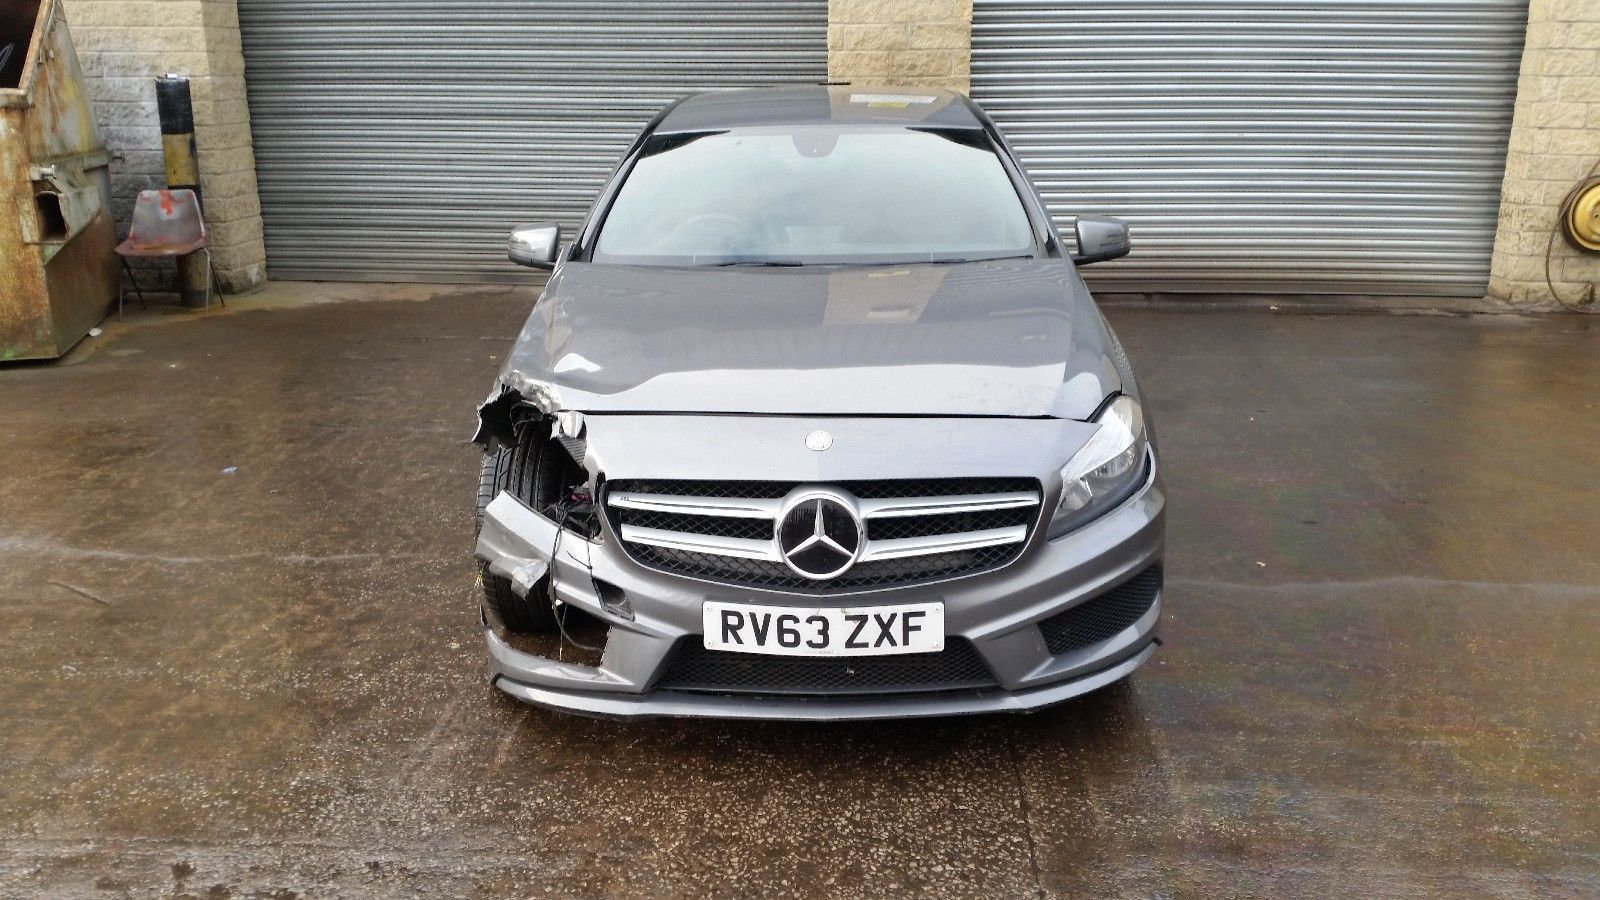 Ebay Mercedes Benz 1 8 Cdi A200 Amg Sport Blue Efficency Repairable